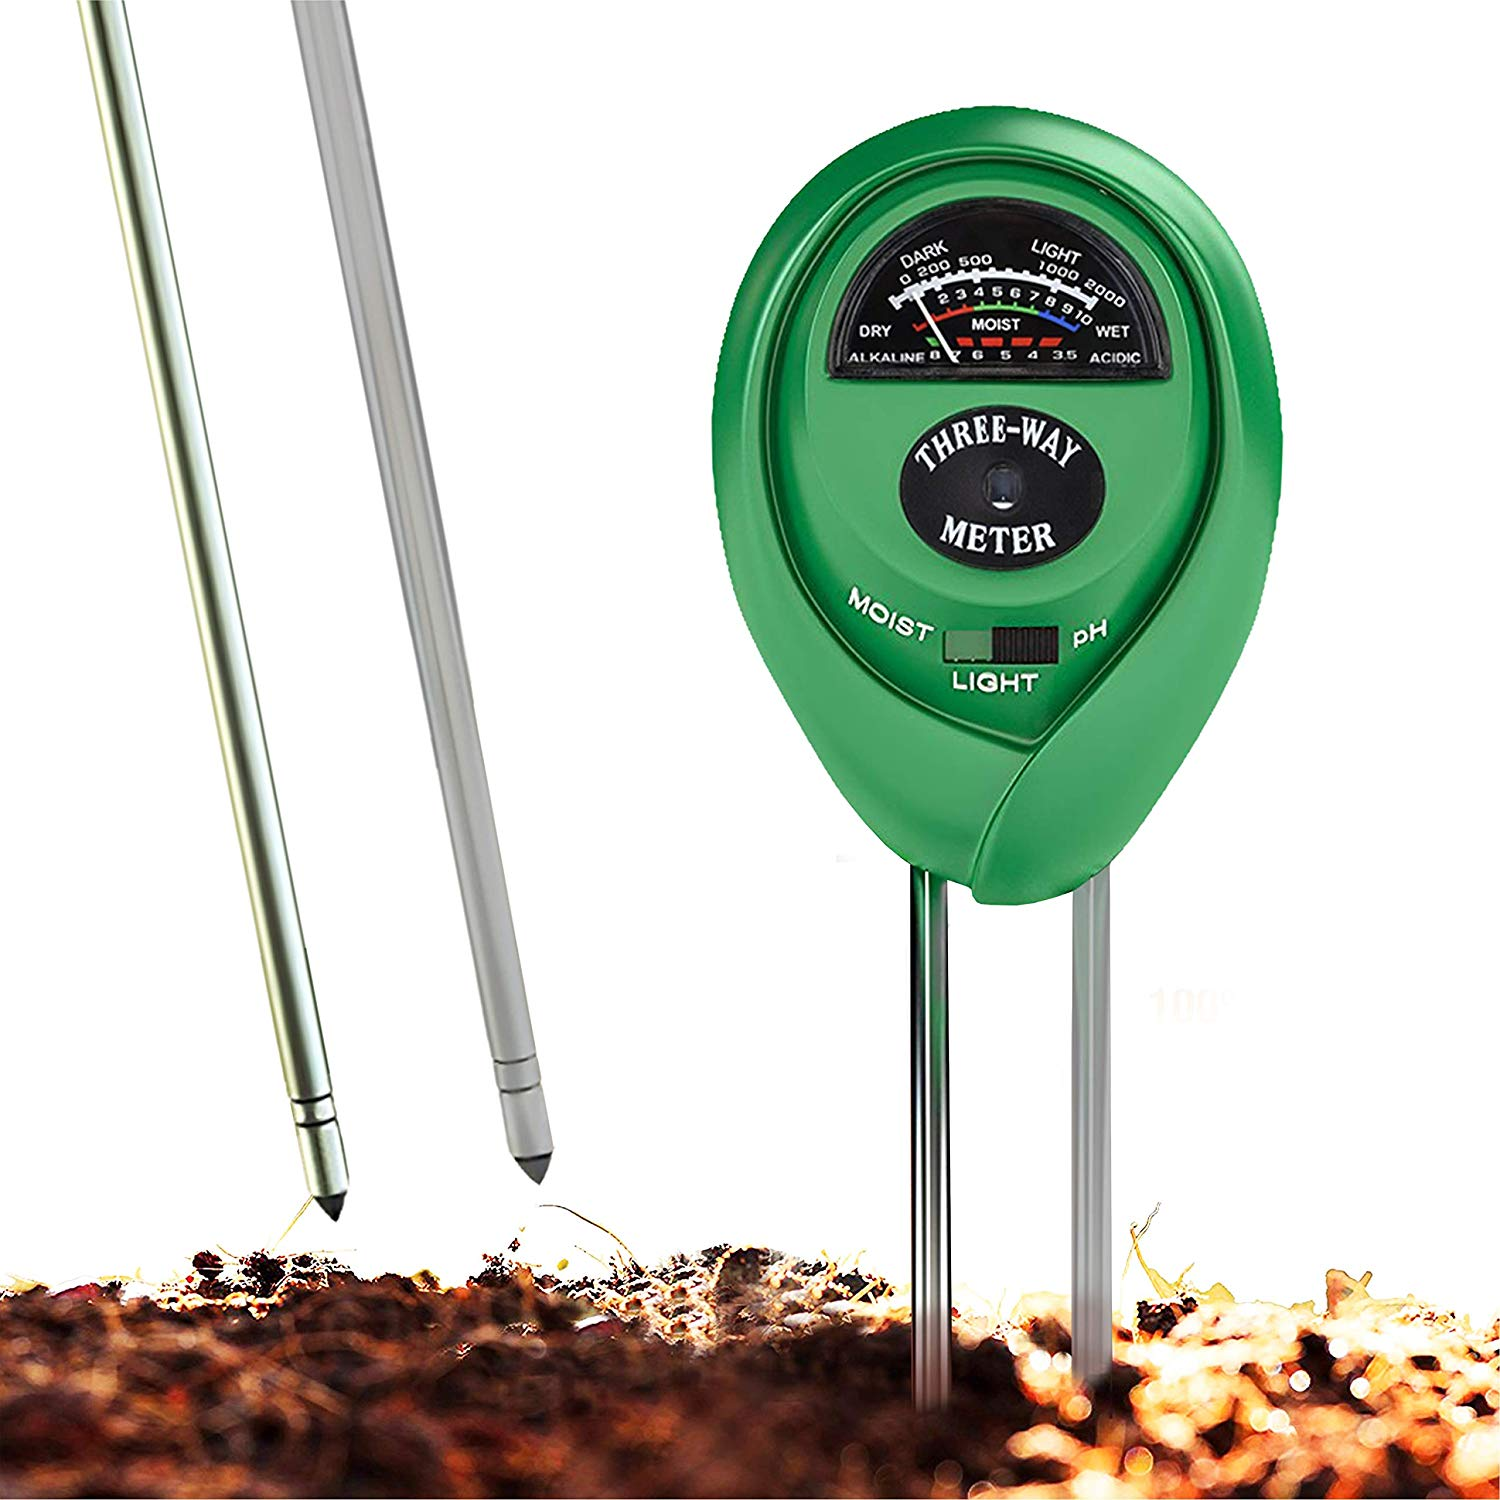 Soil Ph Meter 3 In 1 Soil Test Kit For Moisture Light And Ph Indoor And Outdoors Soil Tester With 100 Accuracy Walmart Com Walmart Com